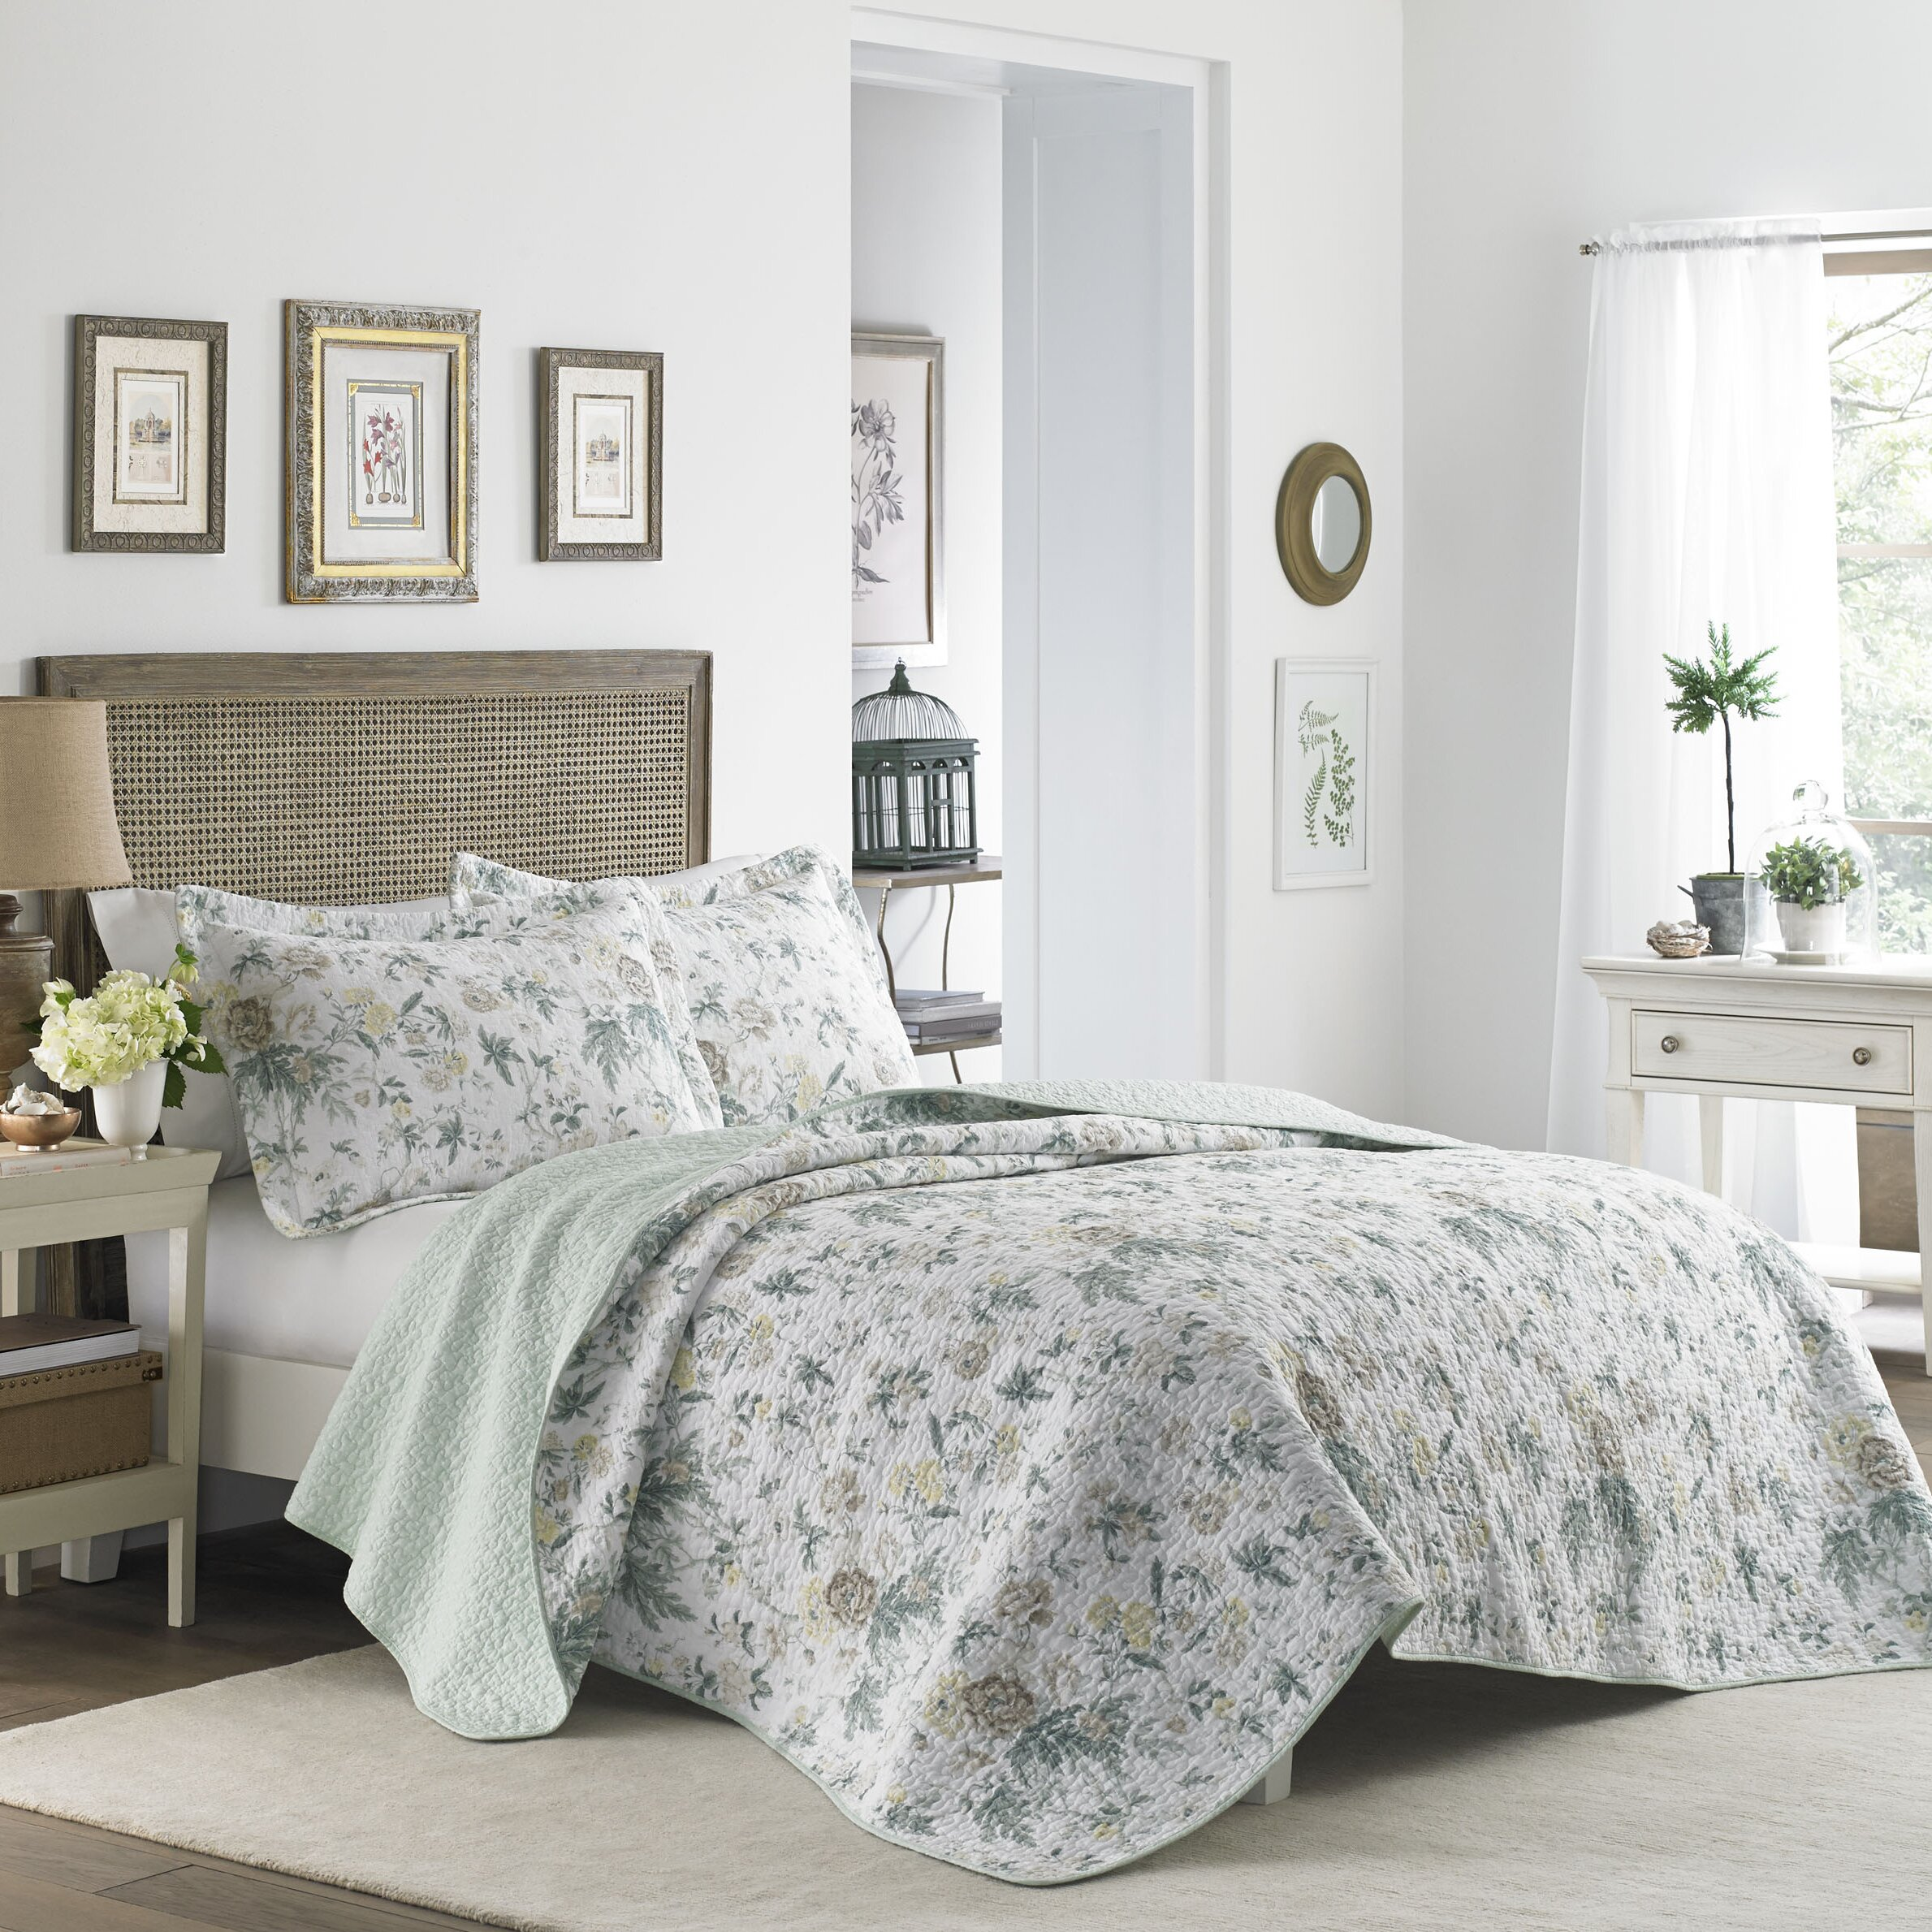 laura ashley home breezy floral quilt set reviews wayfair. Black Bedroom Furniture Sets. Home Design Ideas